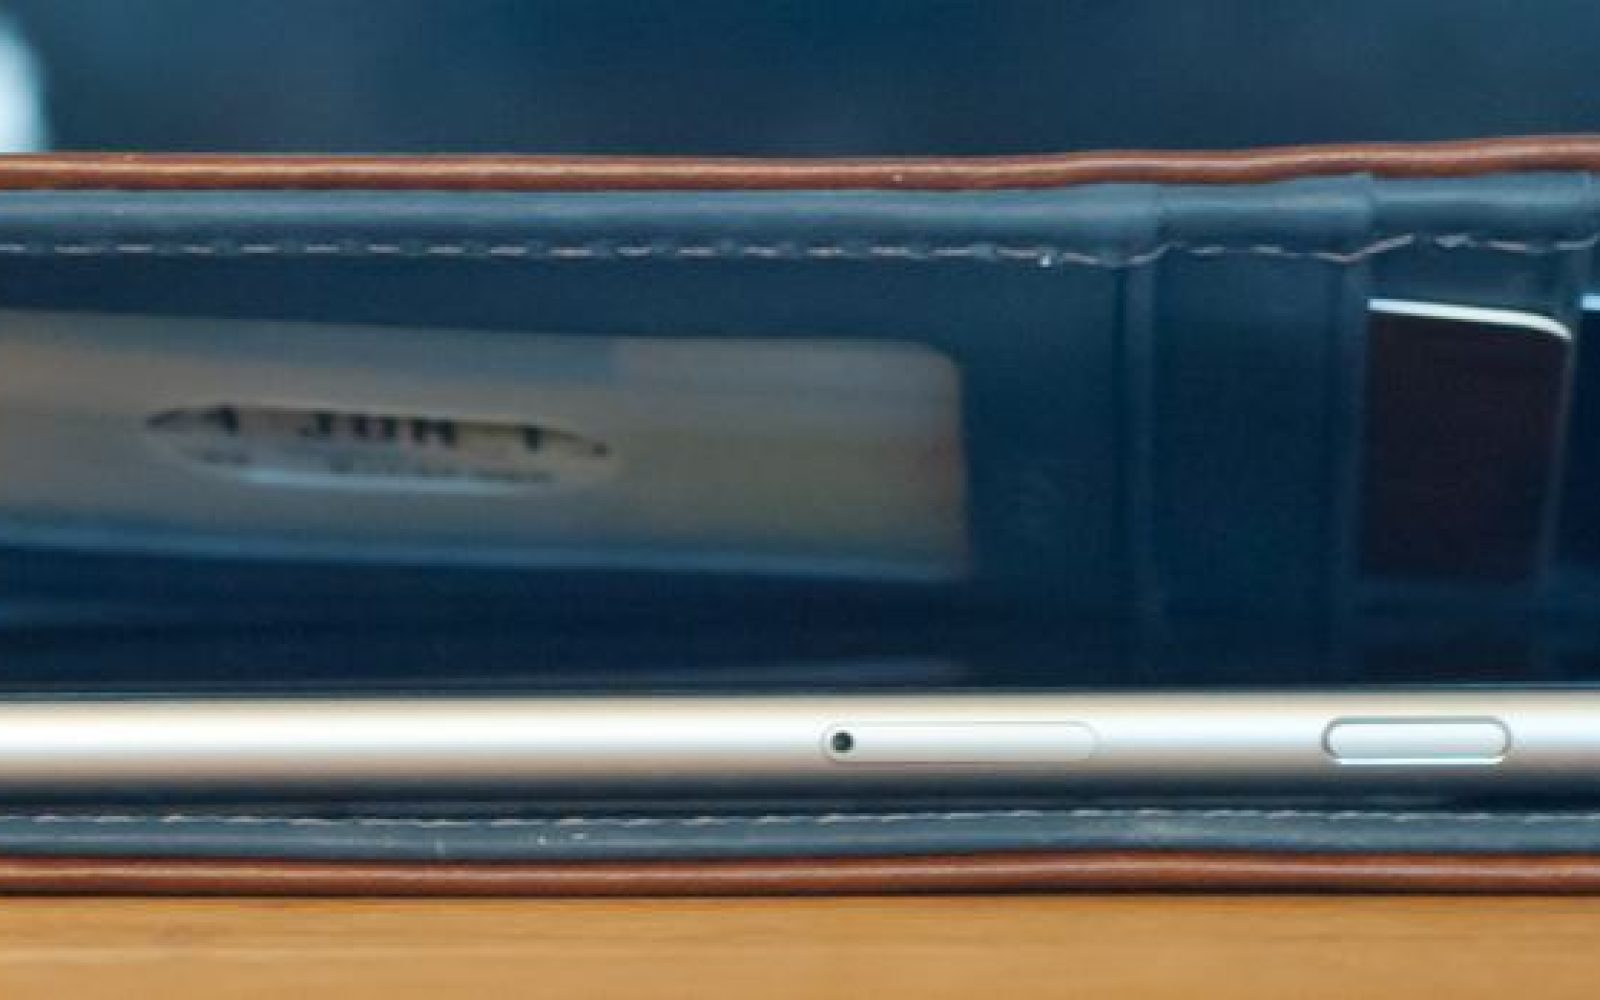 purchase cheap 05ccc 97eaa Review: Pad & Quill's Bella Fino wallet case for iPhone 6/Plus ...